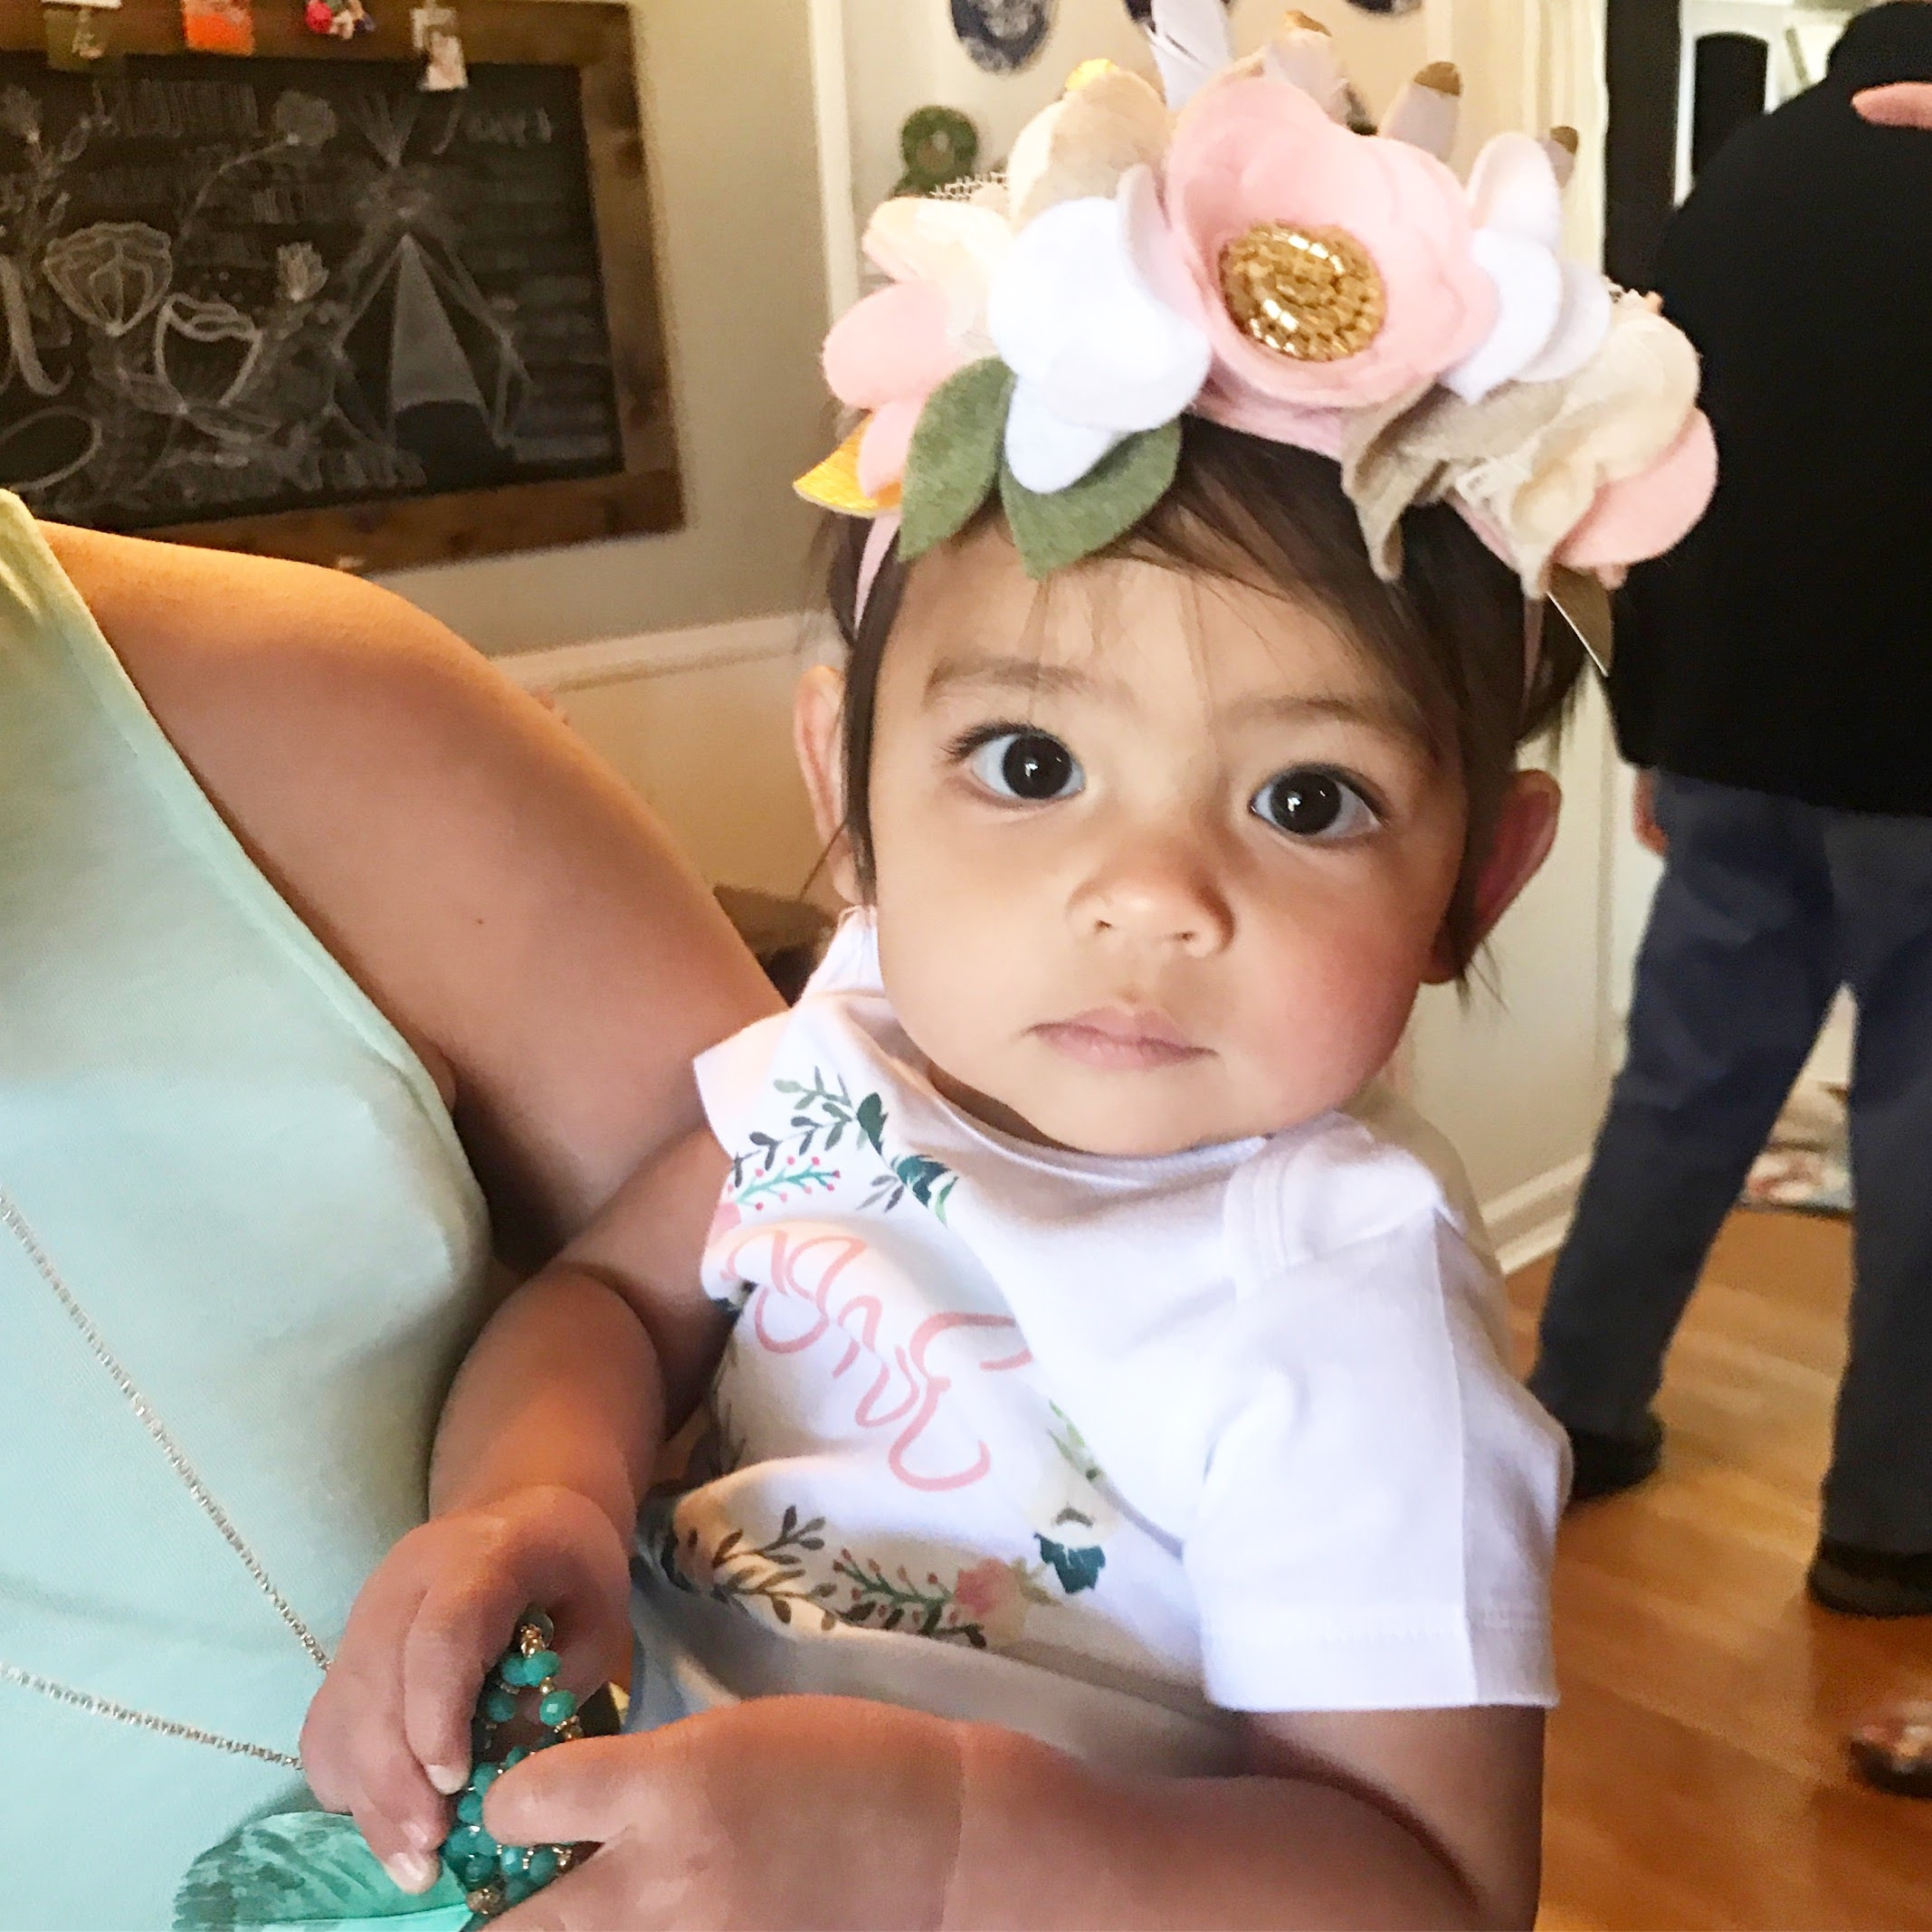 Beautiful Baby One Tribal Garden Floral Birthday Crown via Jitneys